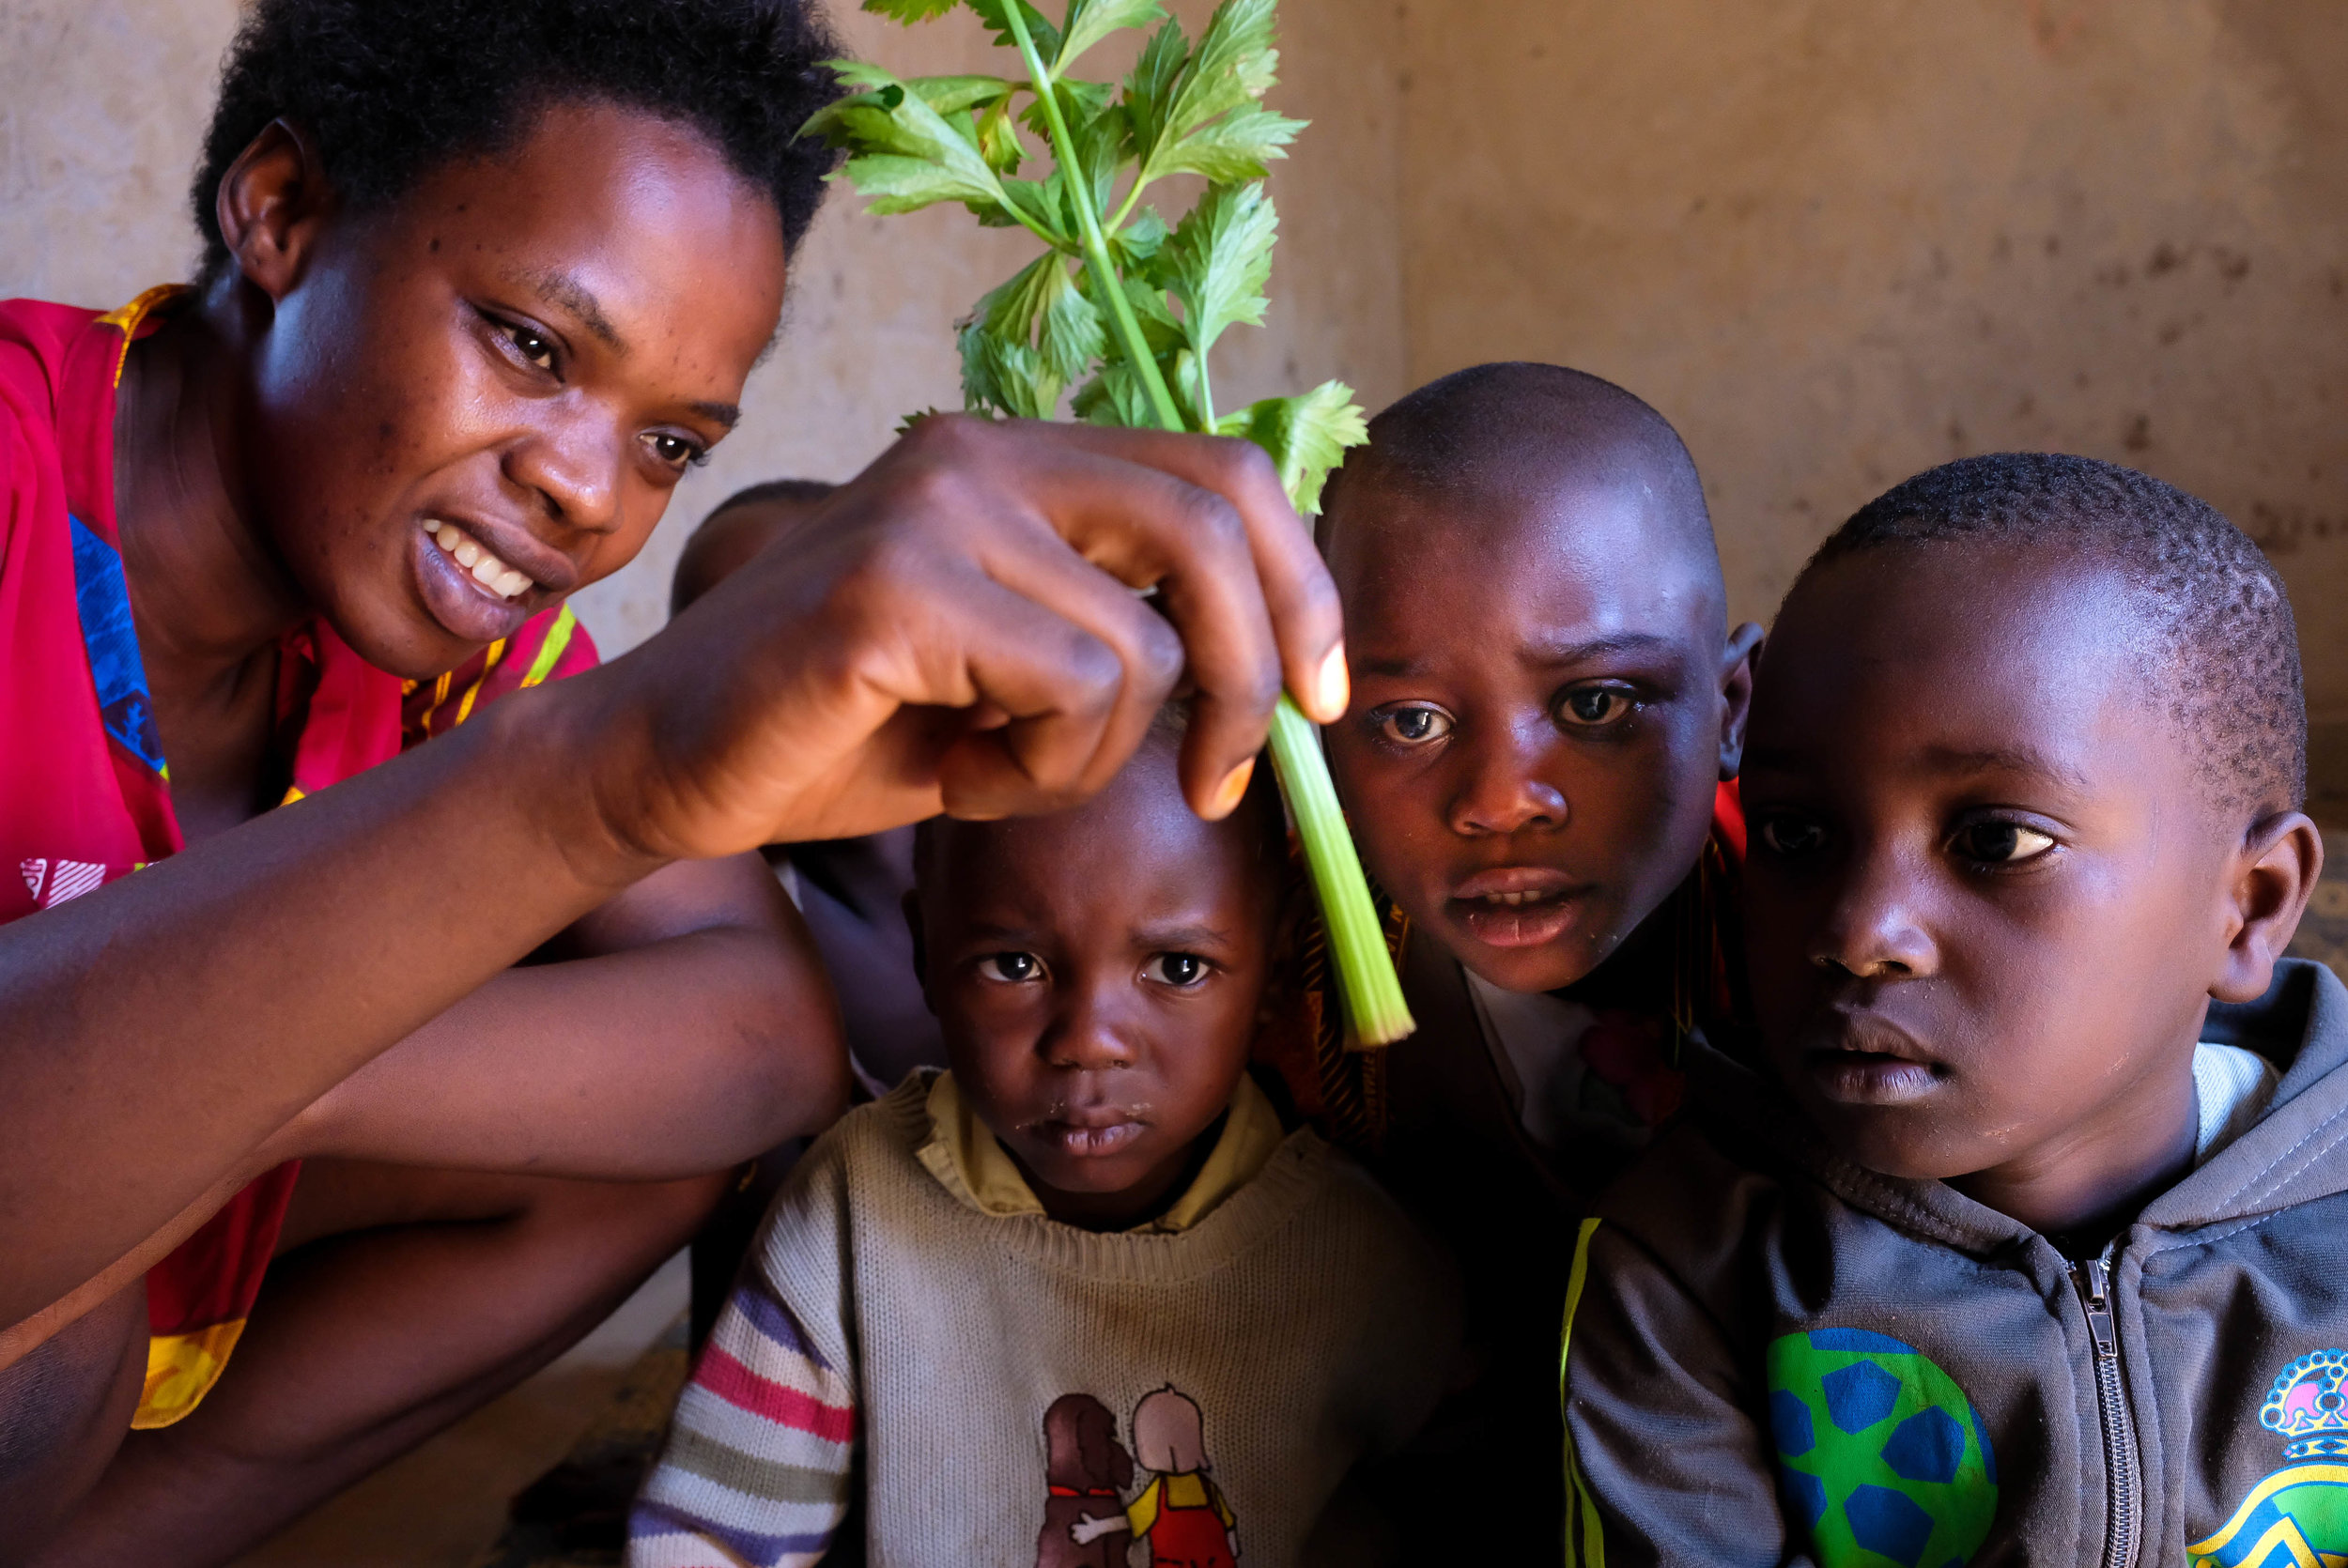 Celette, our ECD teacher, shows Ange, ECD participant, how water travels through a celery stalk on February 16, 2018.